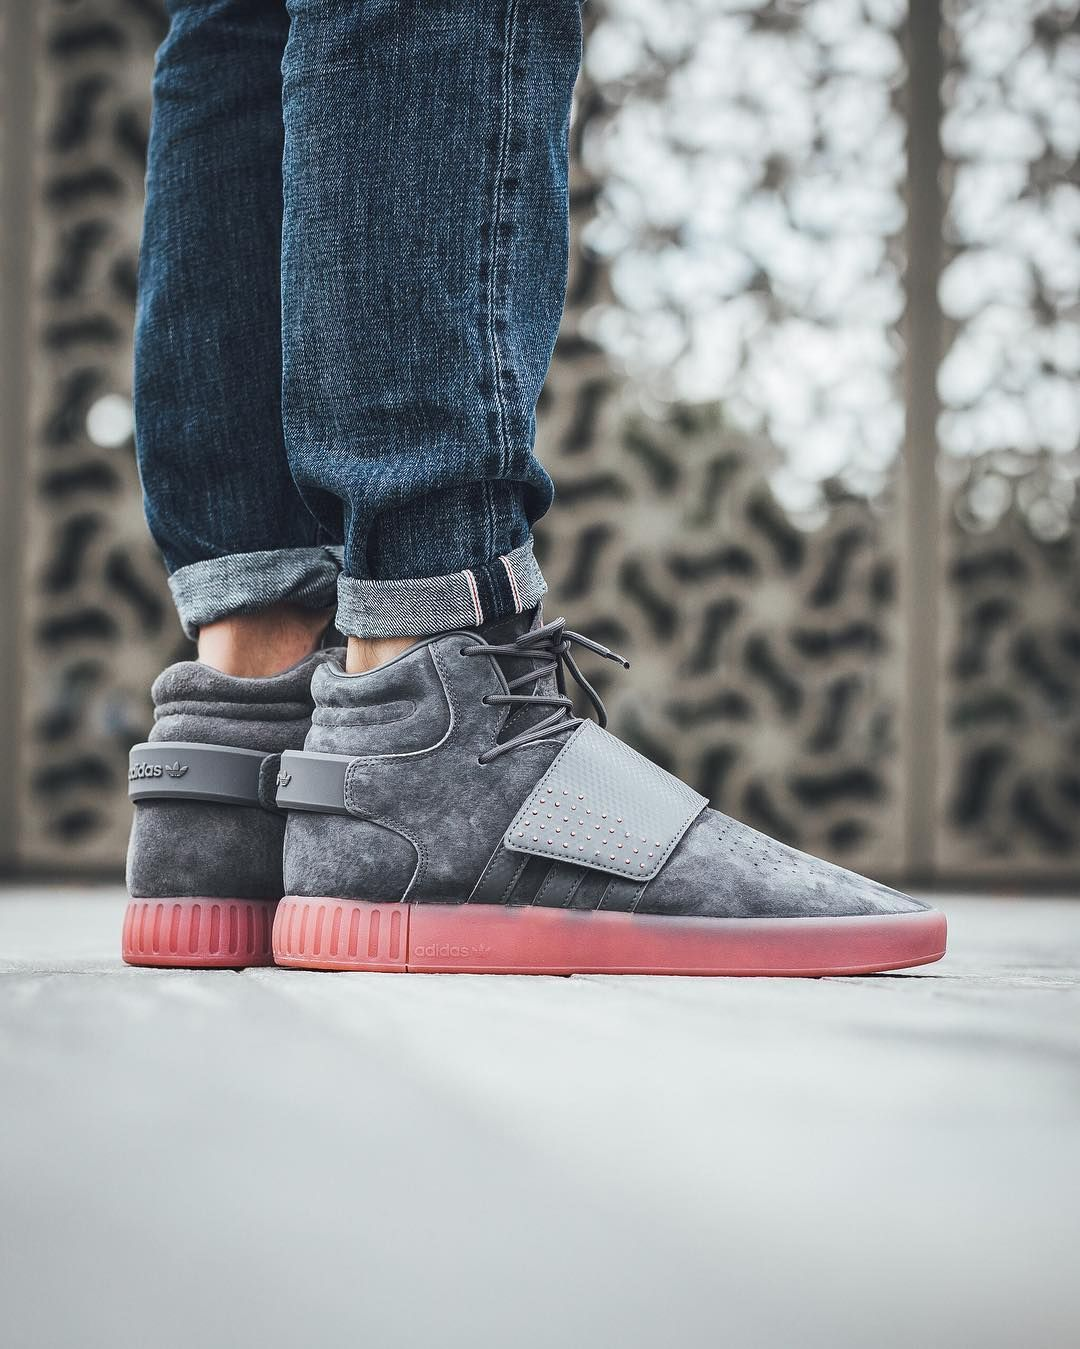 adidas Officially Unveils The Tubular Rise